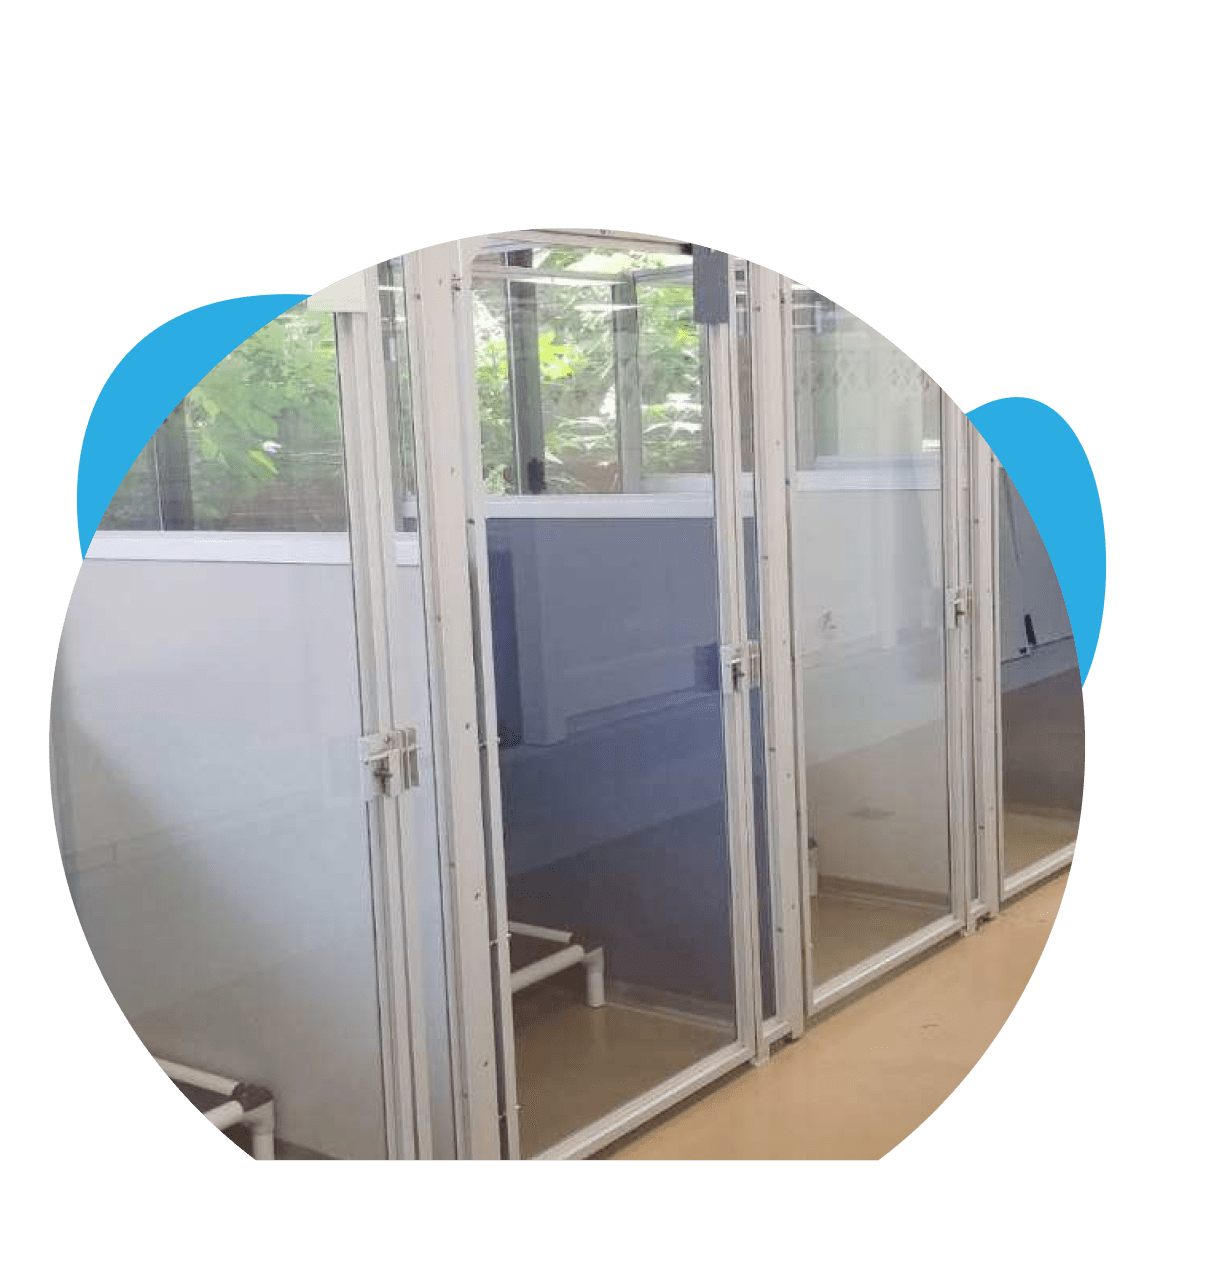 Spacious dog boarding kennels in Rockville md